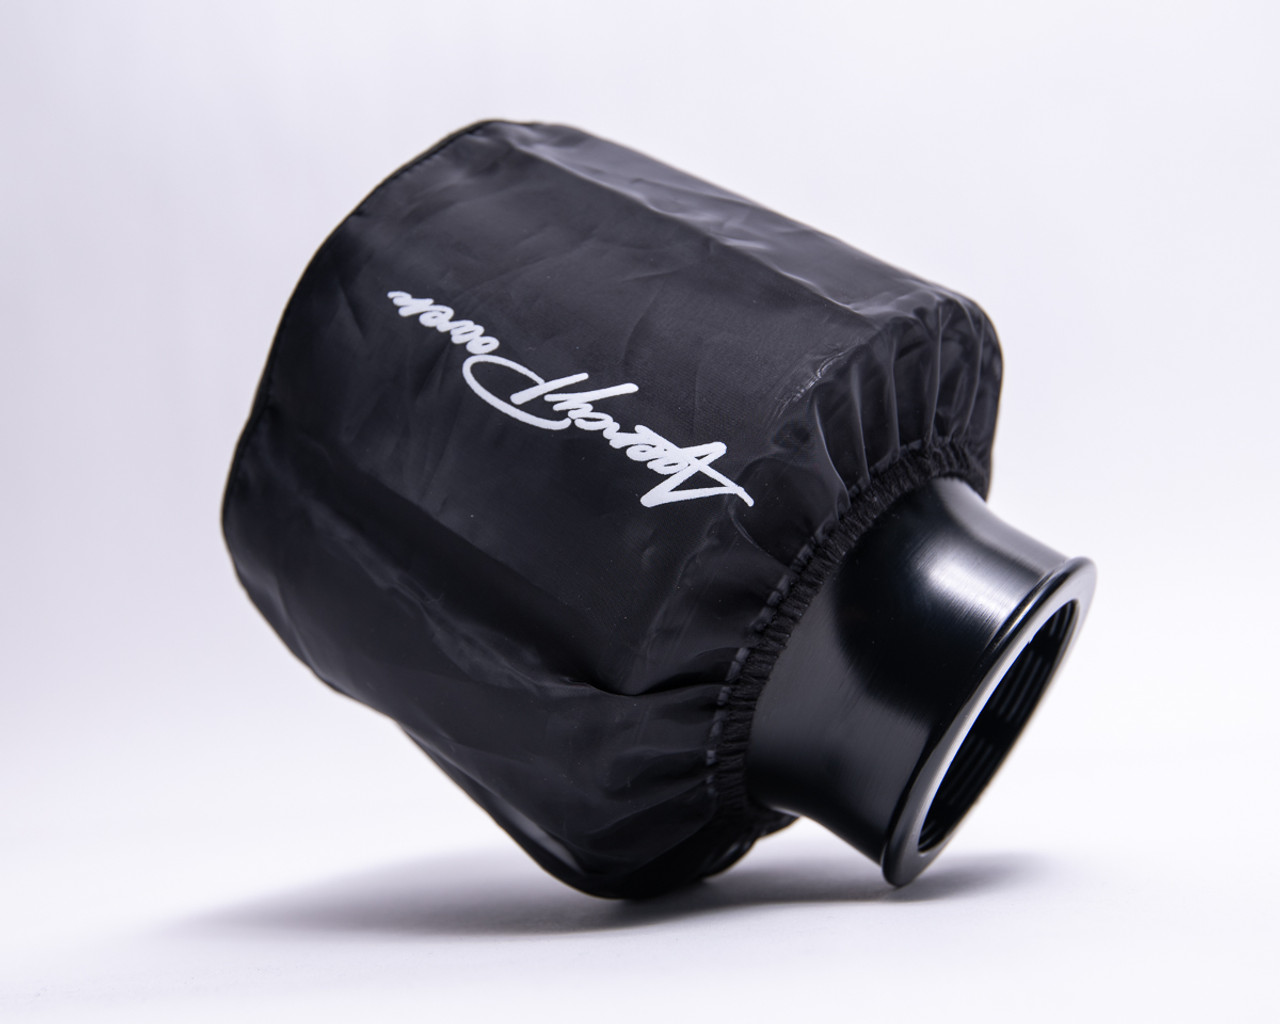 Agency Power Oval Taper Pre-Filter by Outerwears | Yamaha YXZ Supercharger